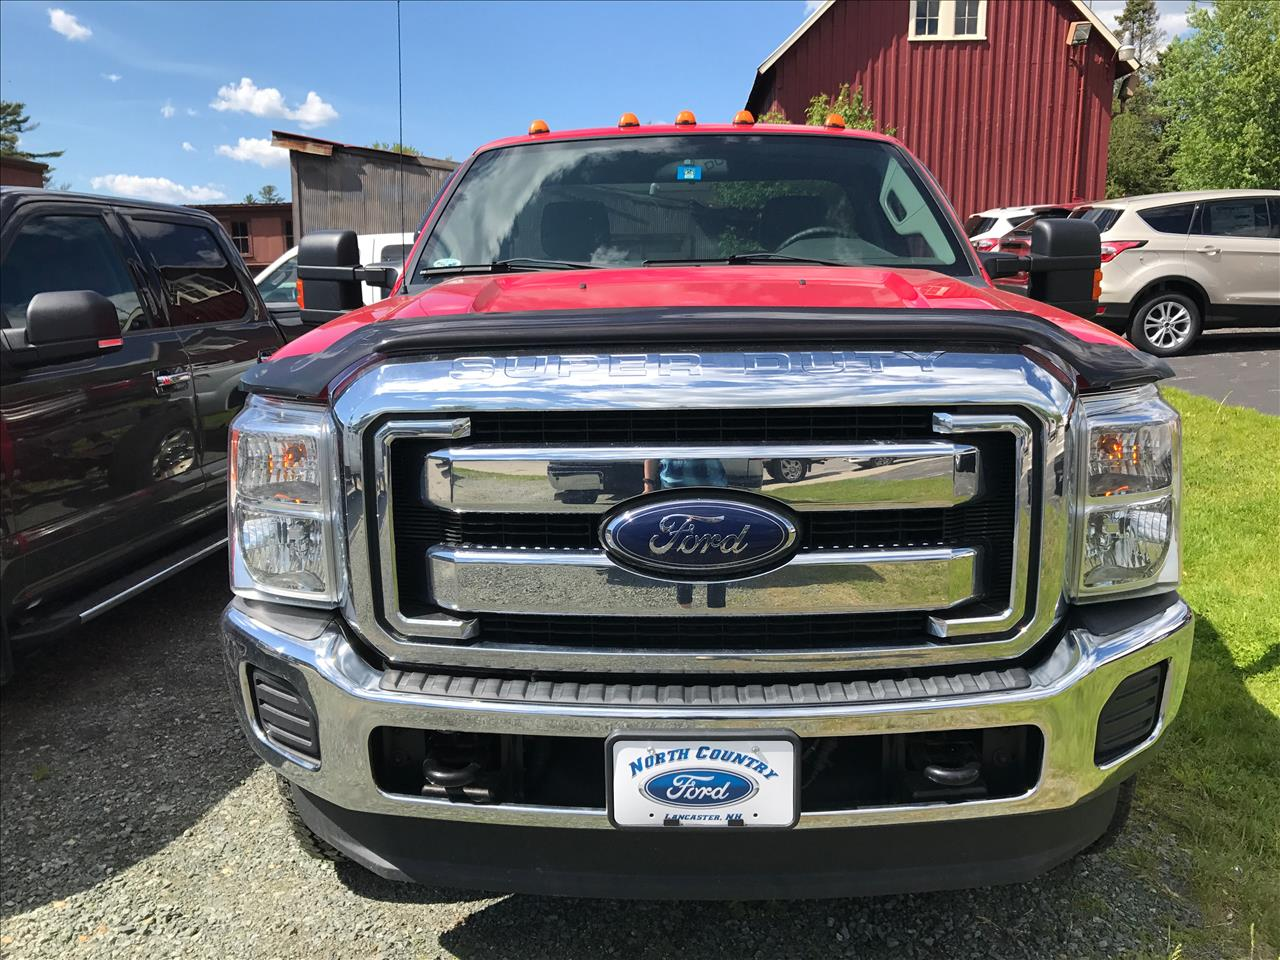 2013 Ford F-350 Super Duty 4x4 XLT 2dr Regular Cab 141 in. WB SRW Chassis - Lancaster NH